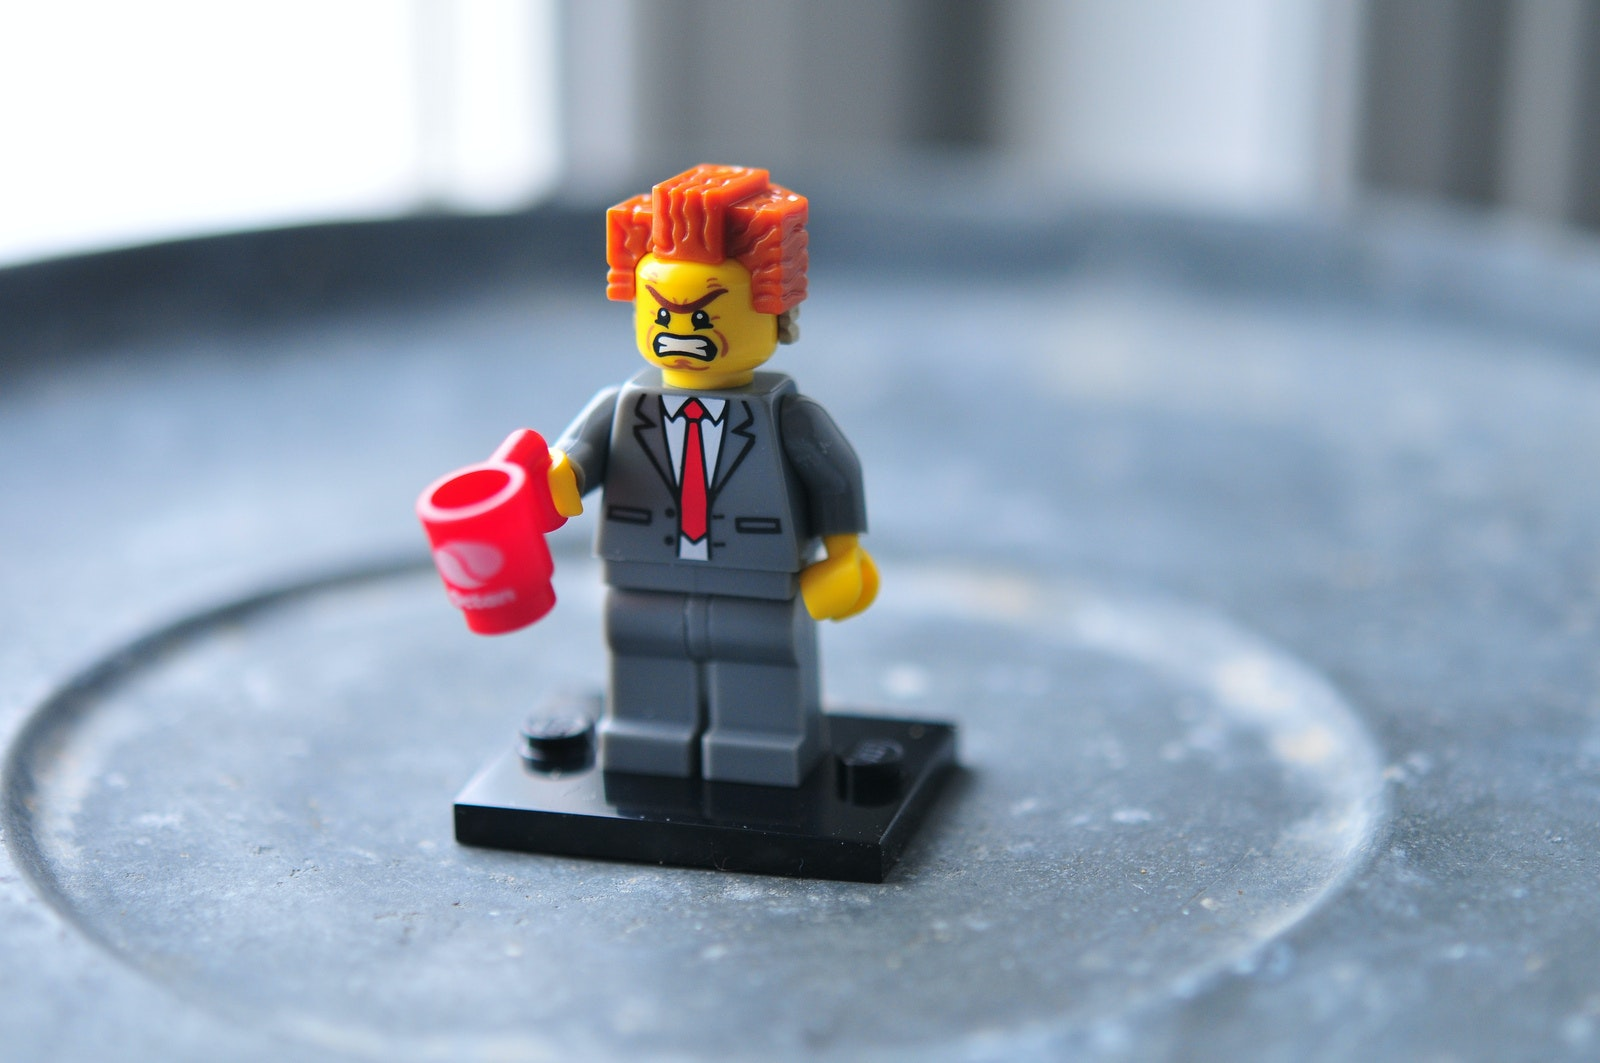 Lego Movie CEO is evil because bad bosses sell cinema tickets